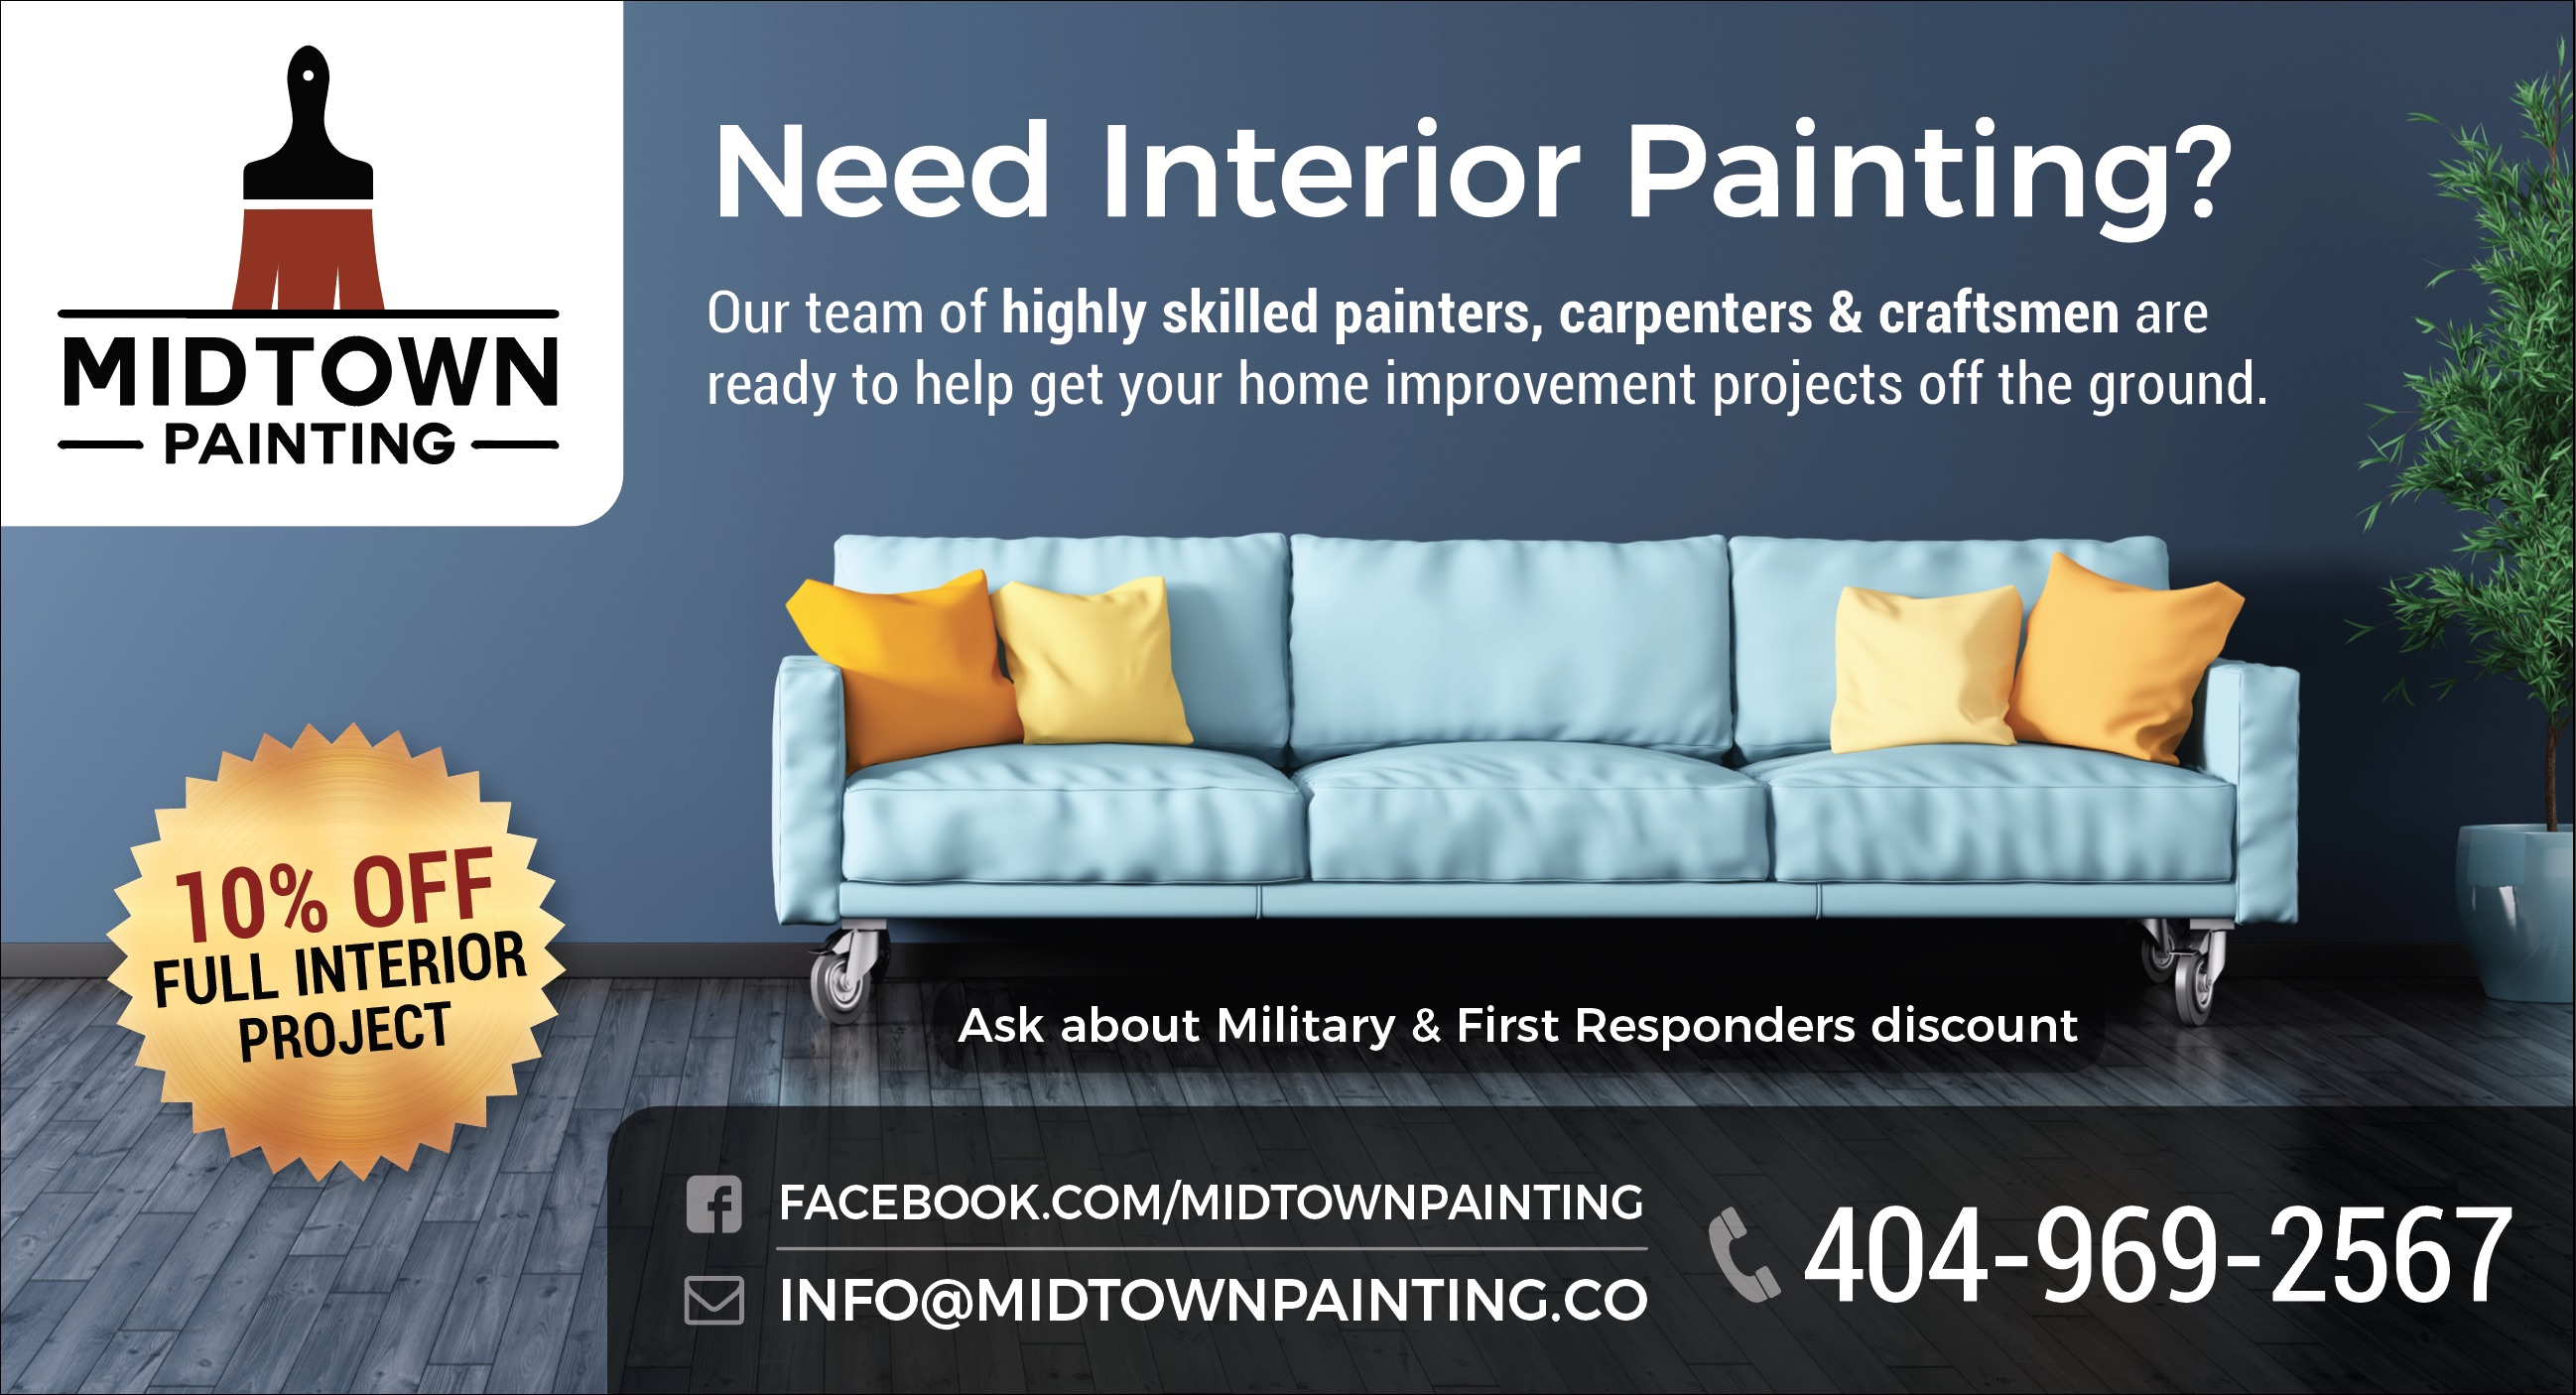 10% Off Any Full Interior Painting Project From Midtown Painting